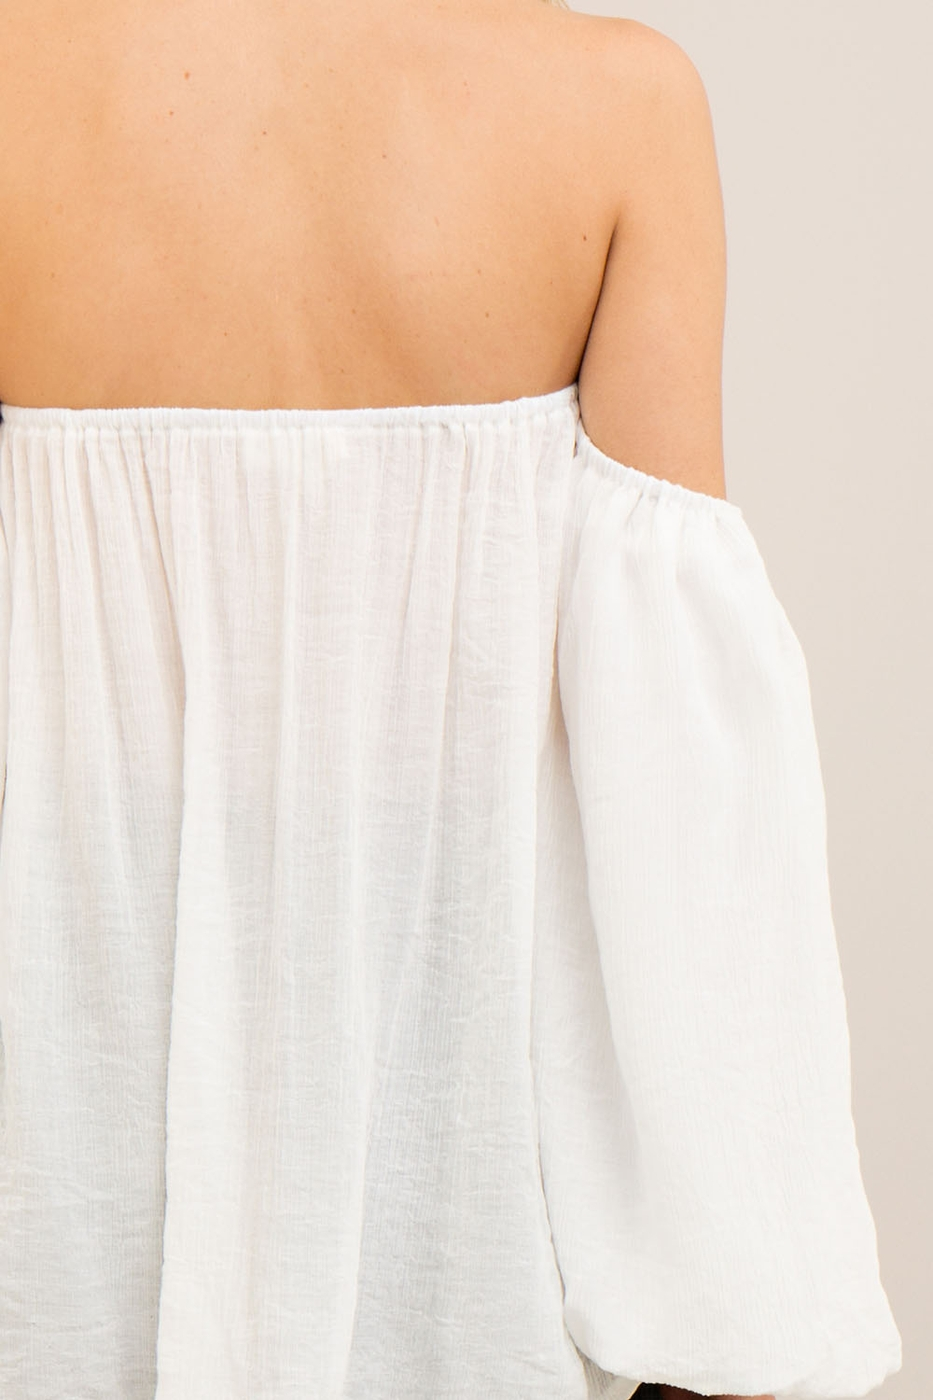 Backless is Well…Back!